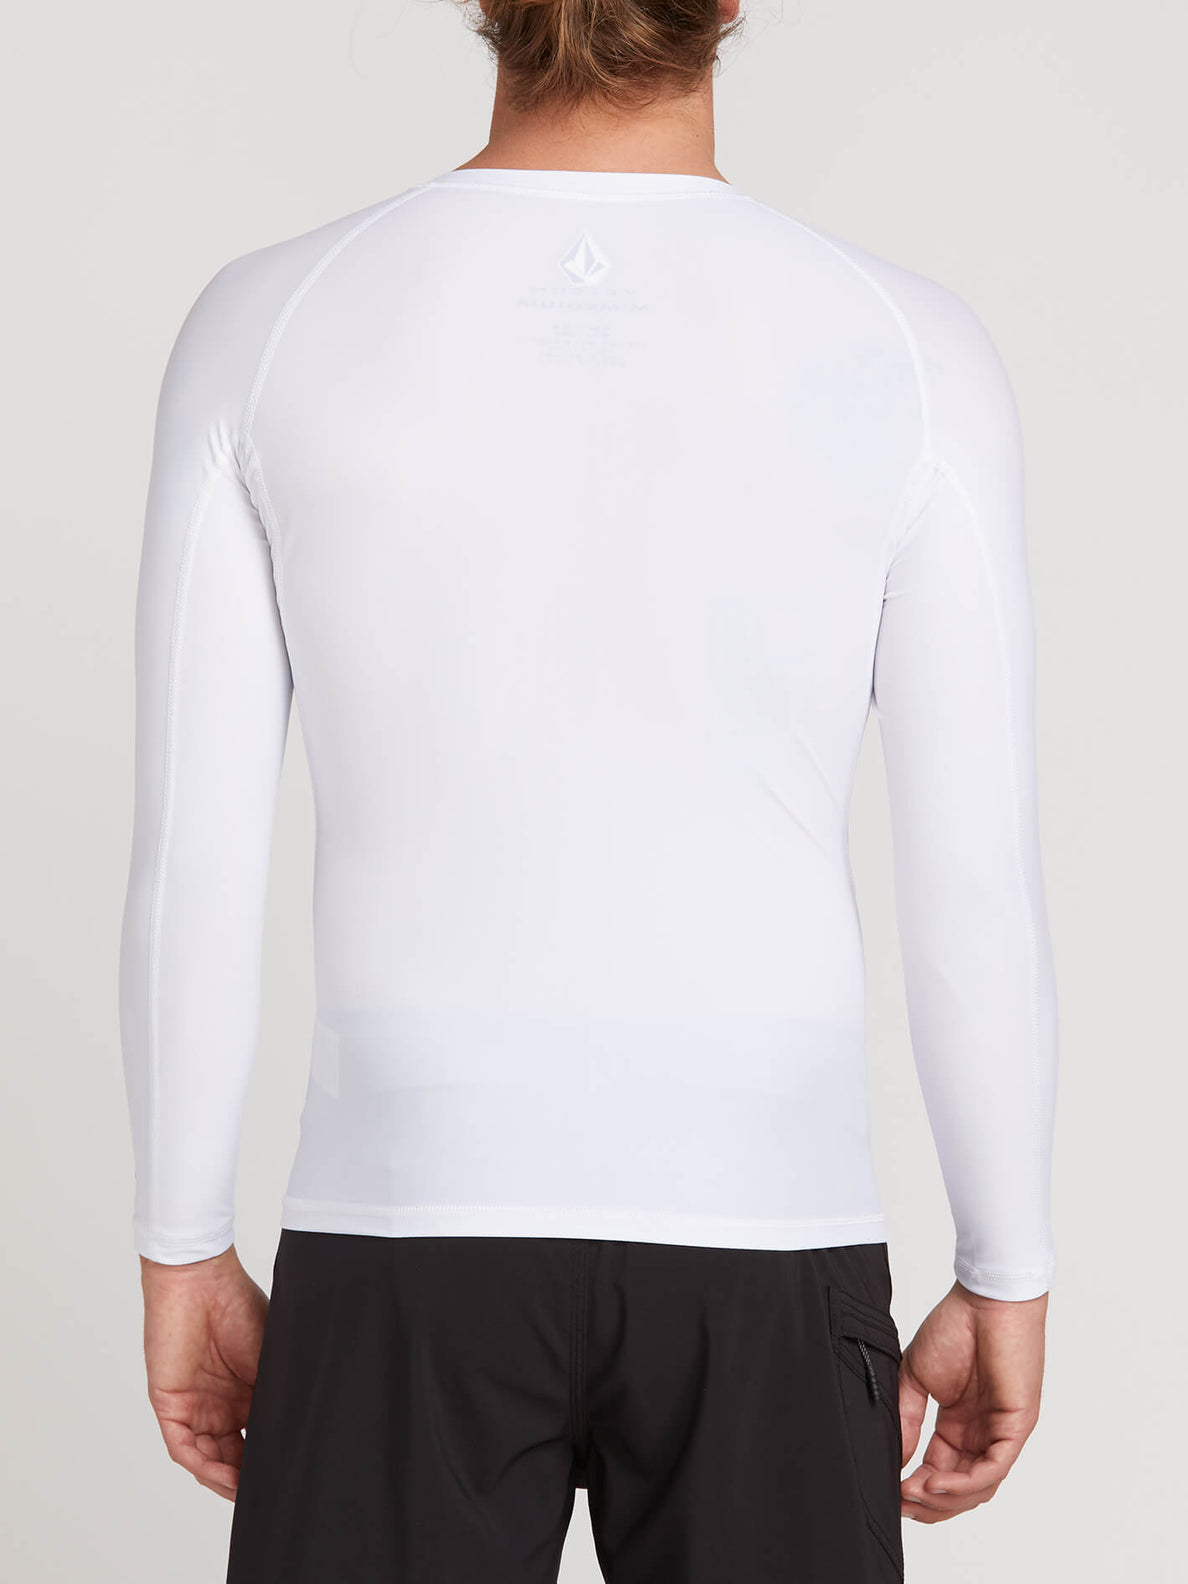 Lido Solid Long Sleeve Rashguard In White, Back View